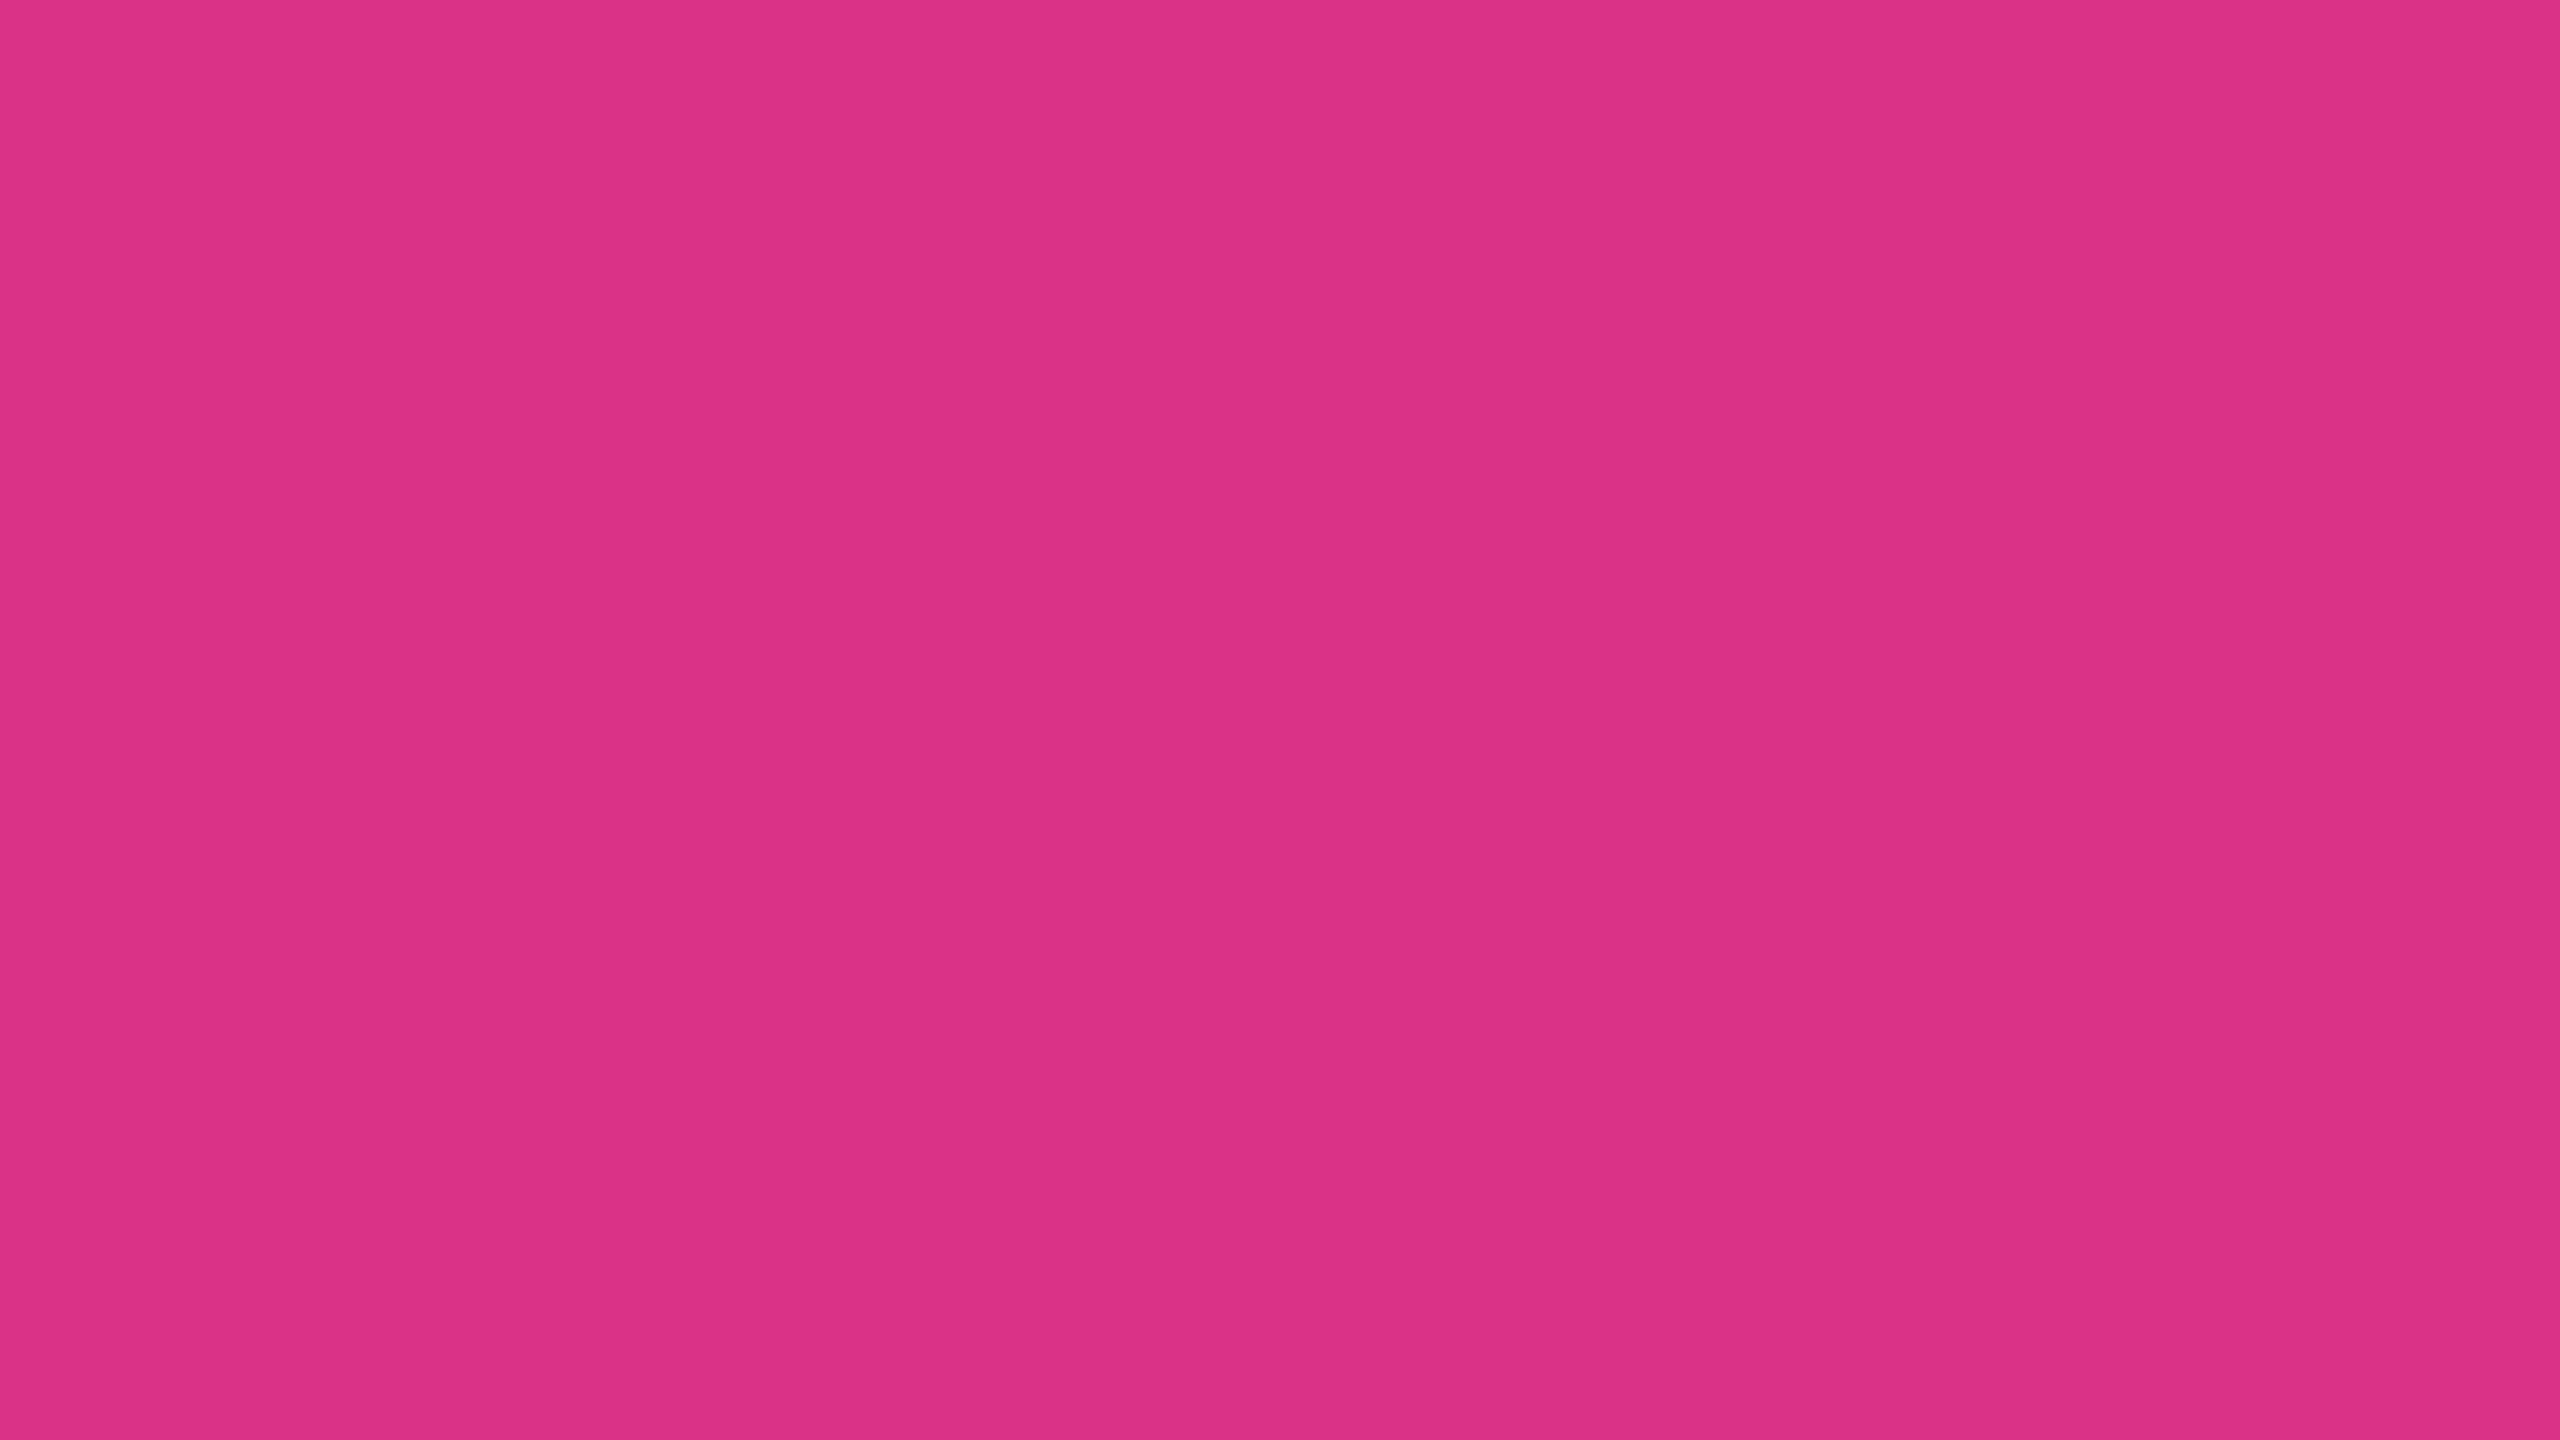 2560x1440 Deep Cerise Solid Color Background